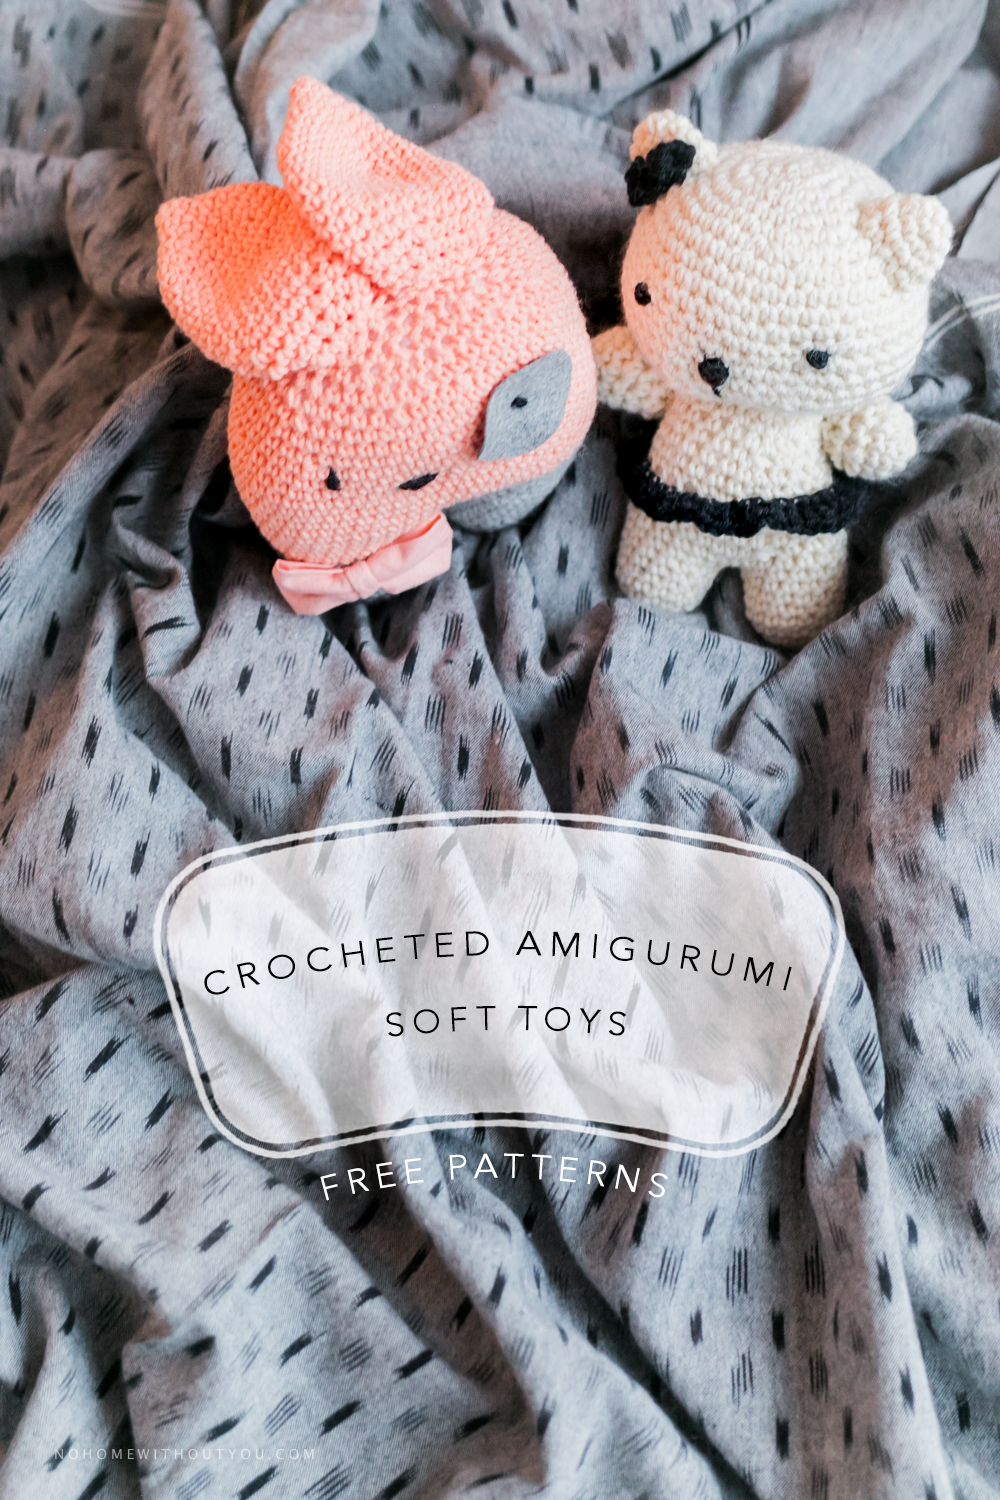 Crocheted amigurumi soft toys free pattern (10 of 10)